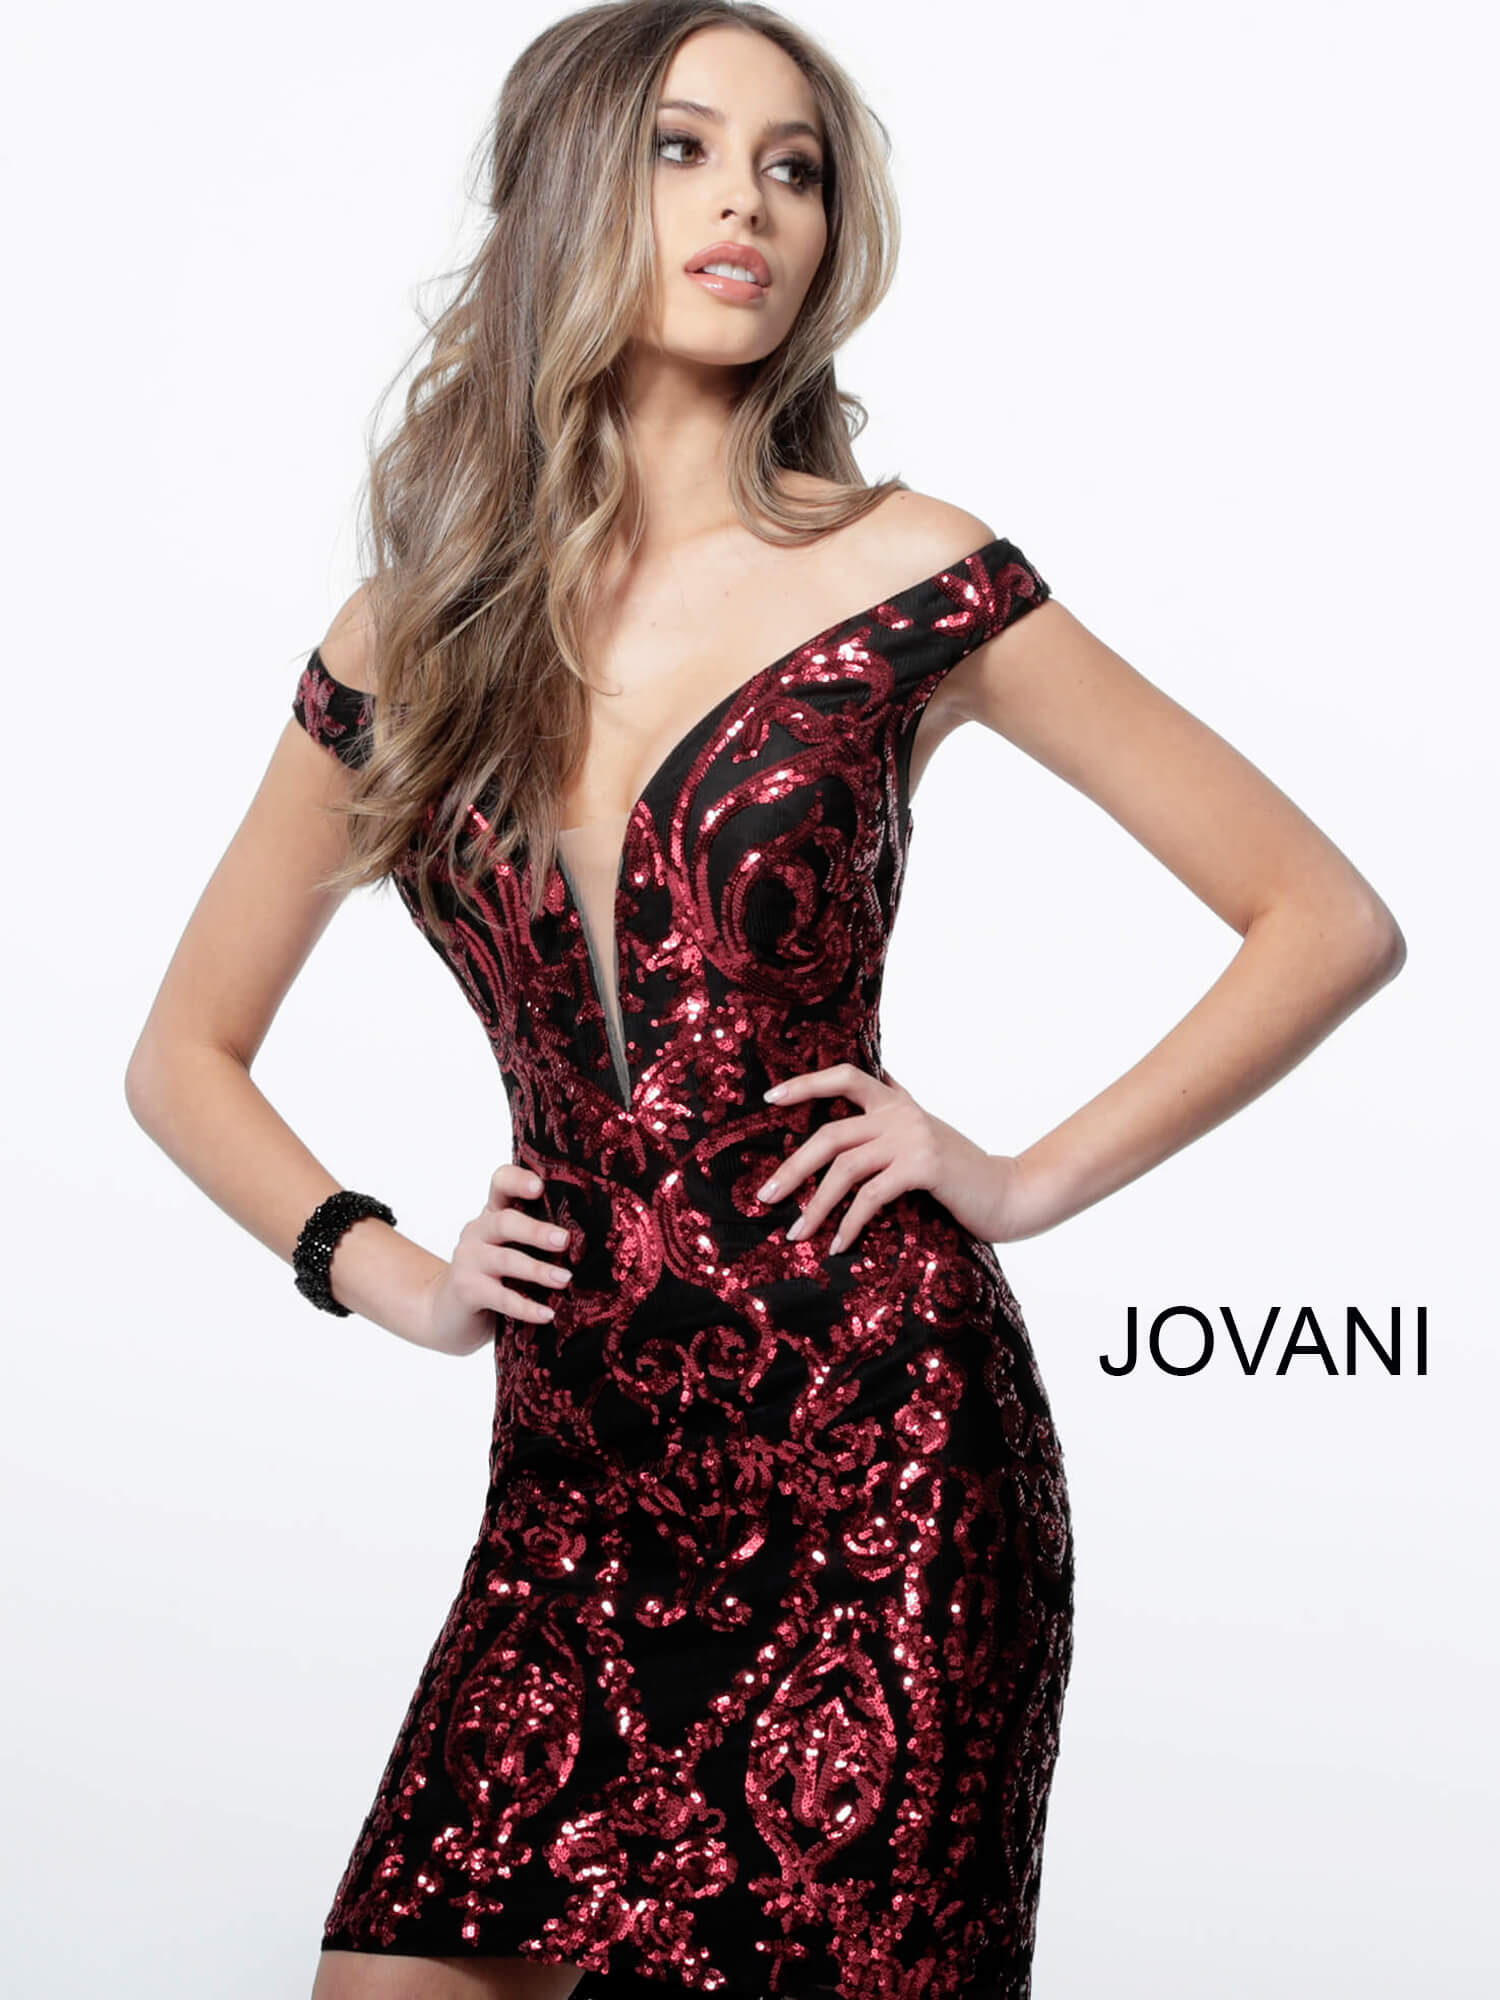 Jovani 2666 Black Red Off the Shoulder Embellished Short Dress